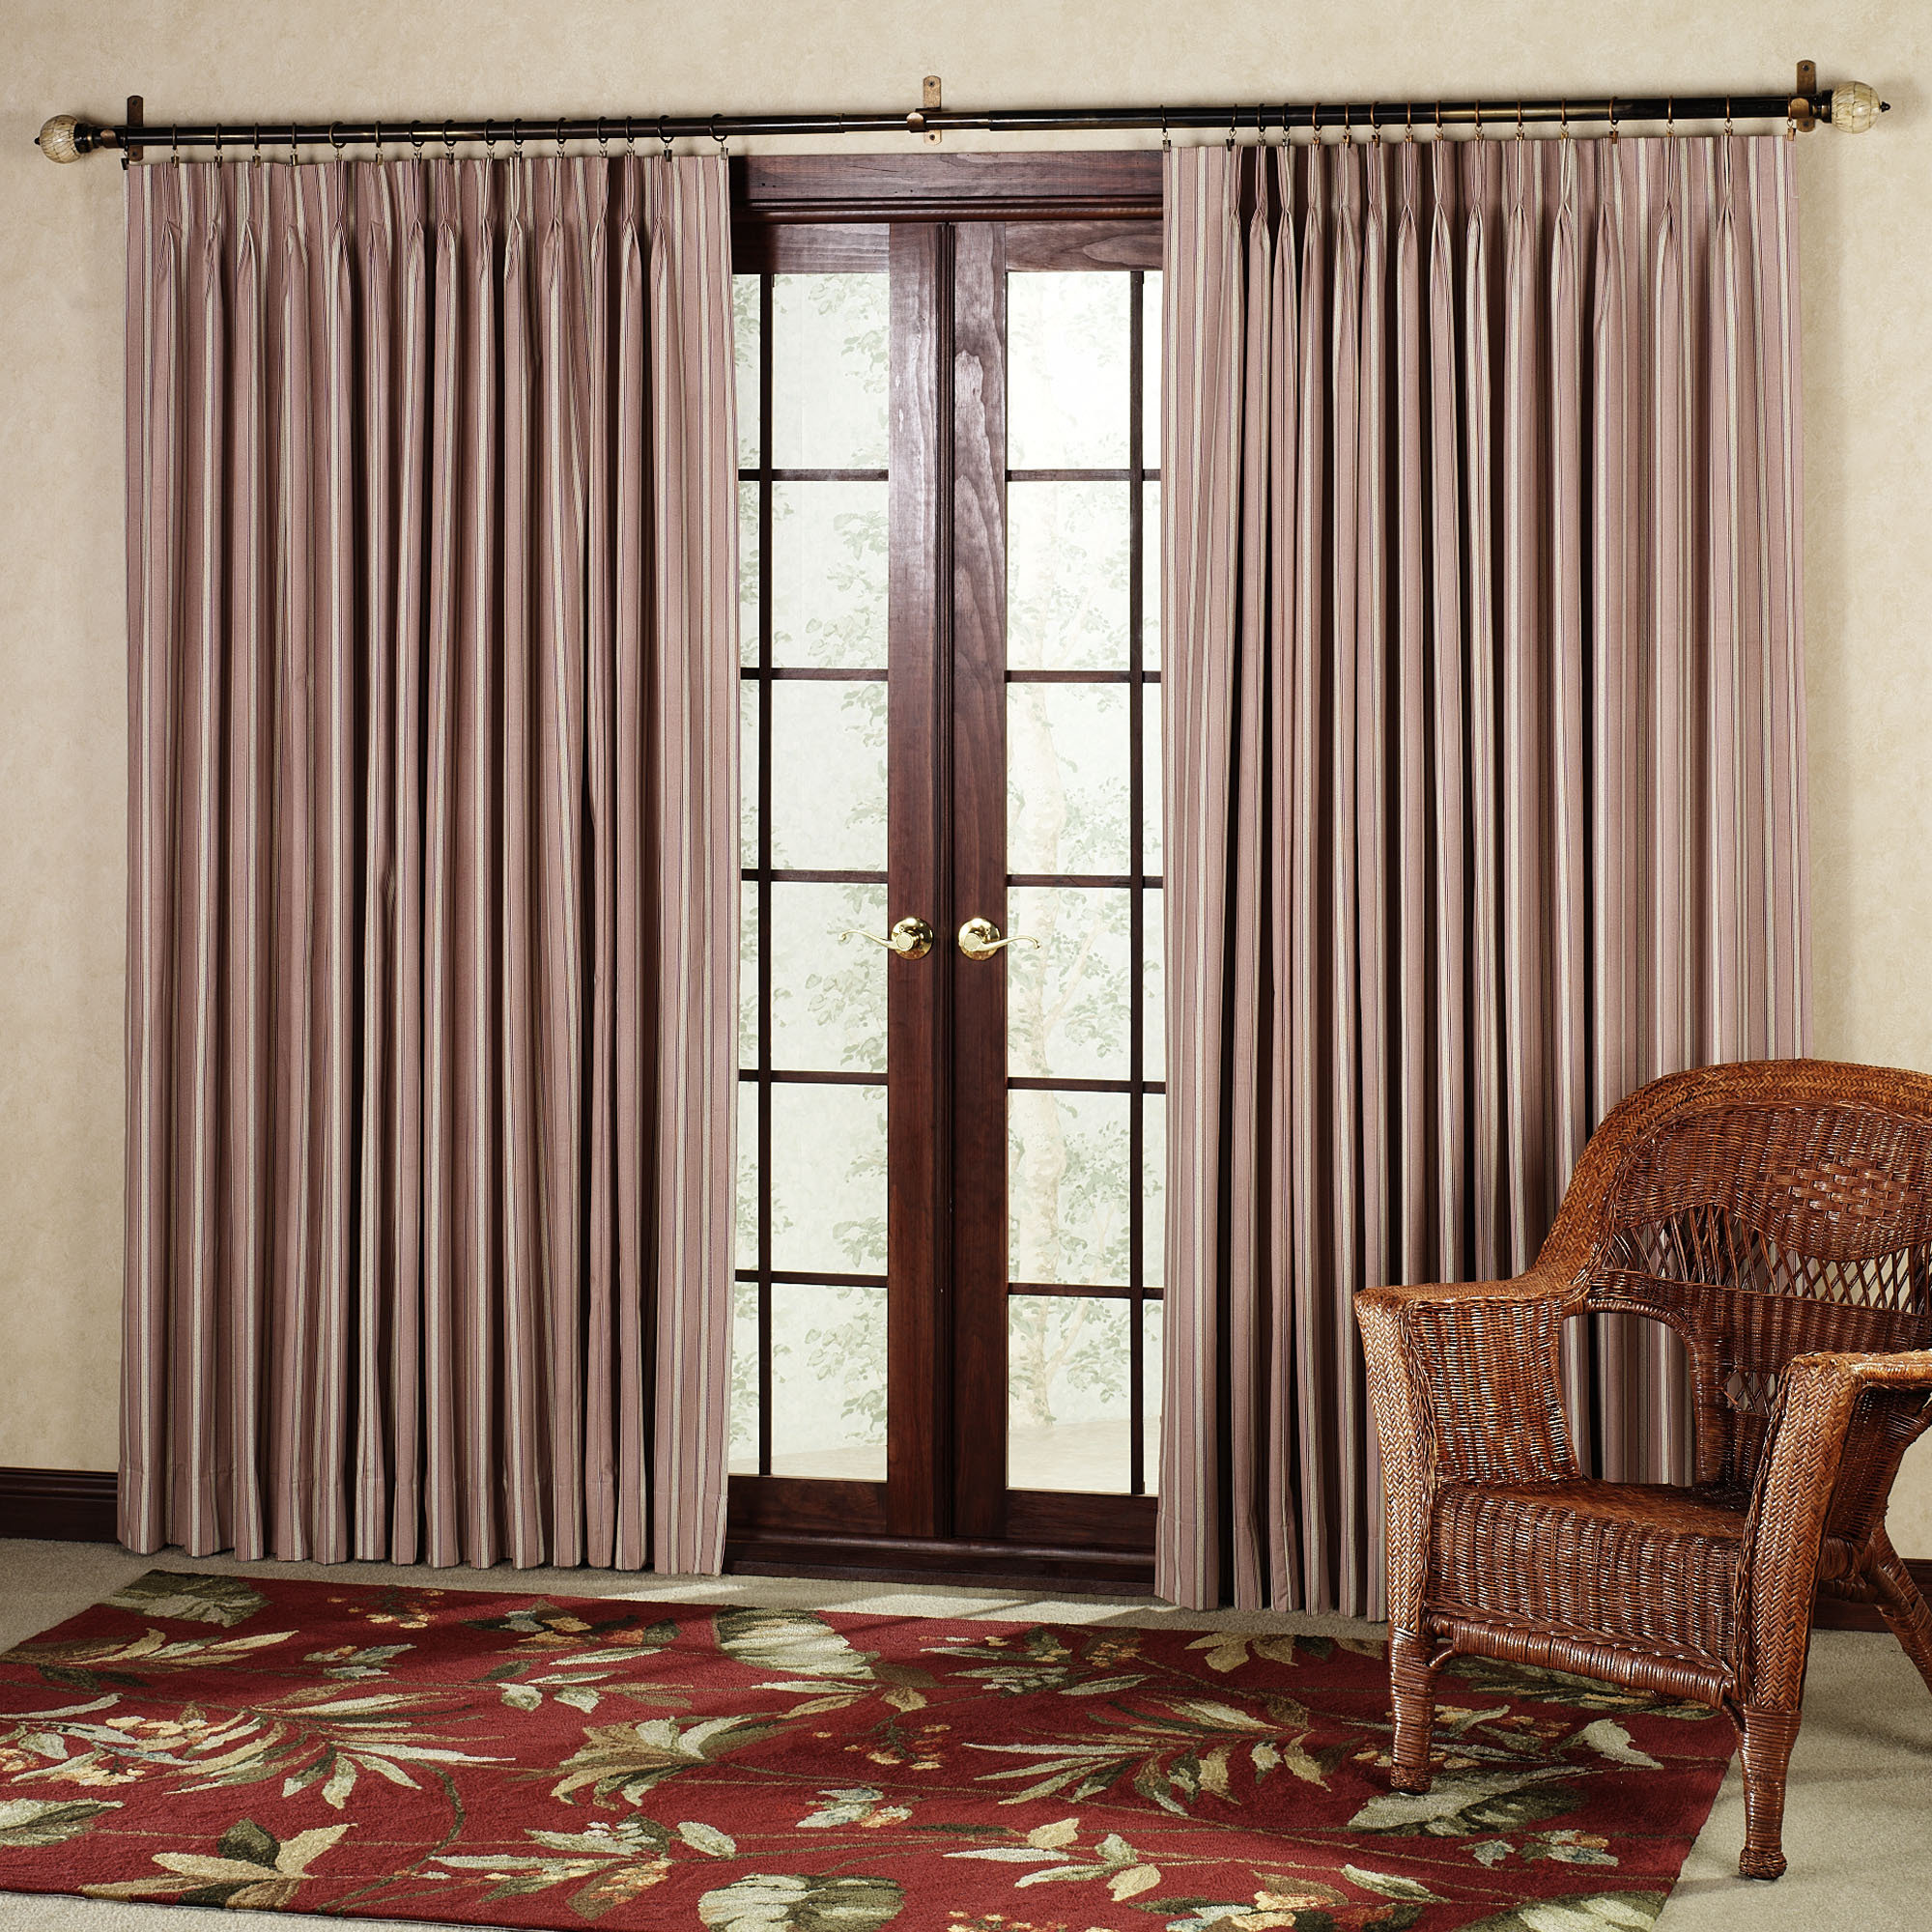 handballtunisie great window sheer org panel l extraordinary door curtains patio curtain